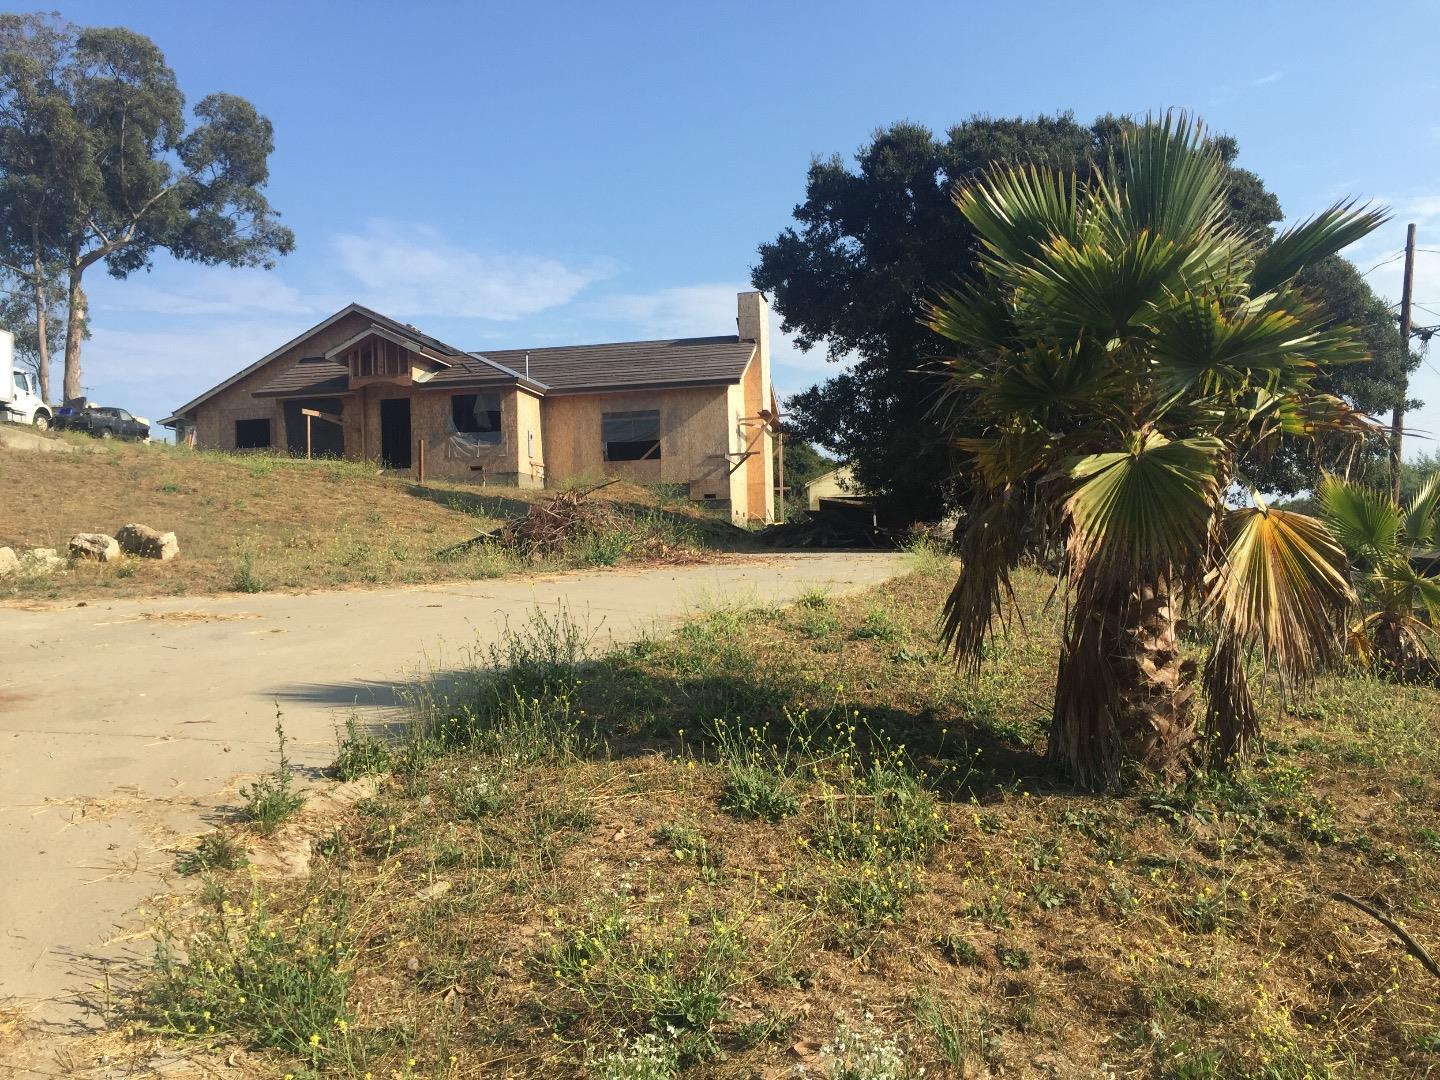 Single Family Home for Sale at 2055 Elkhorn Road 2055 Elkhorn Road Castroville, California 95012 United States